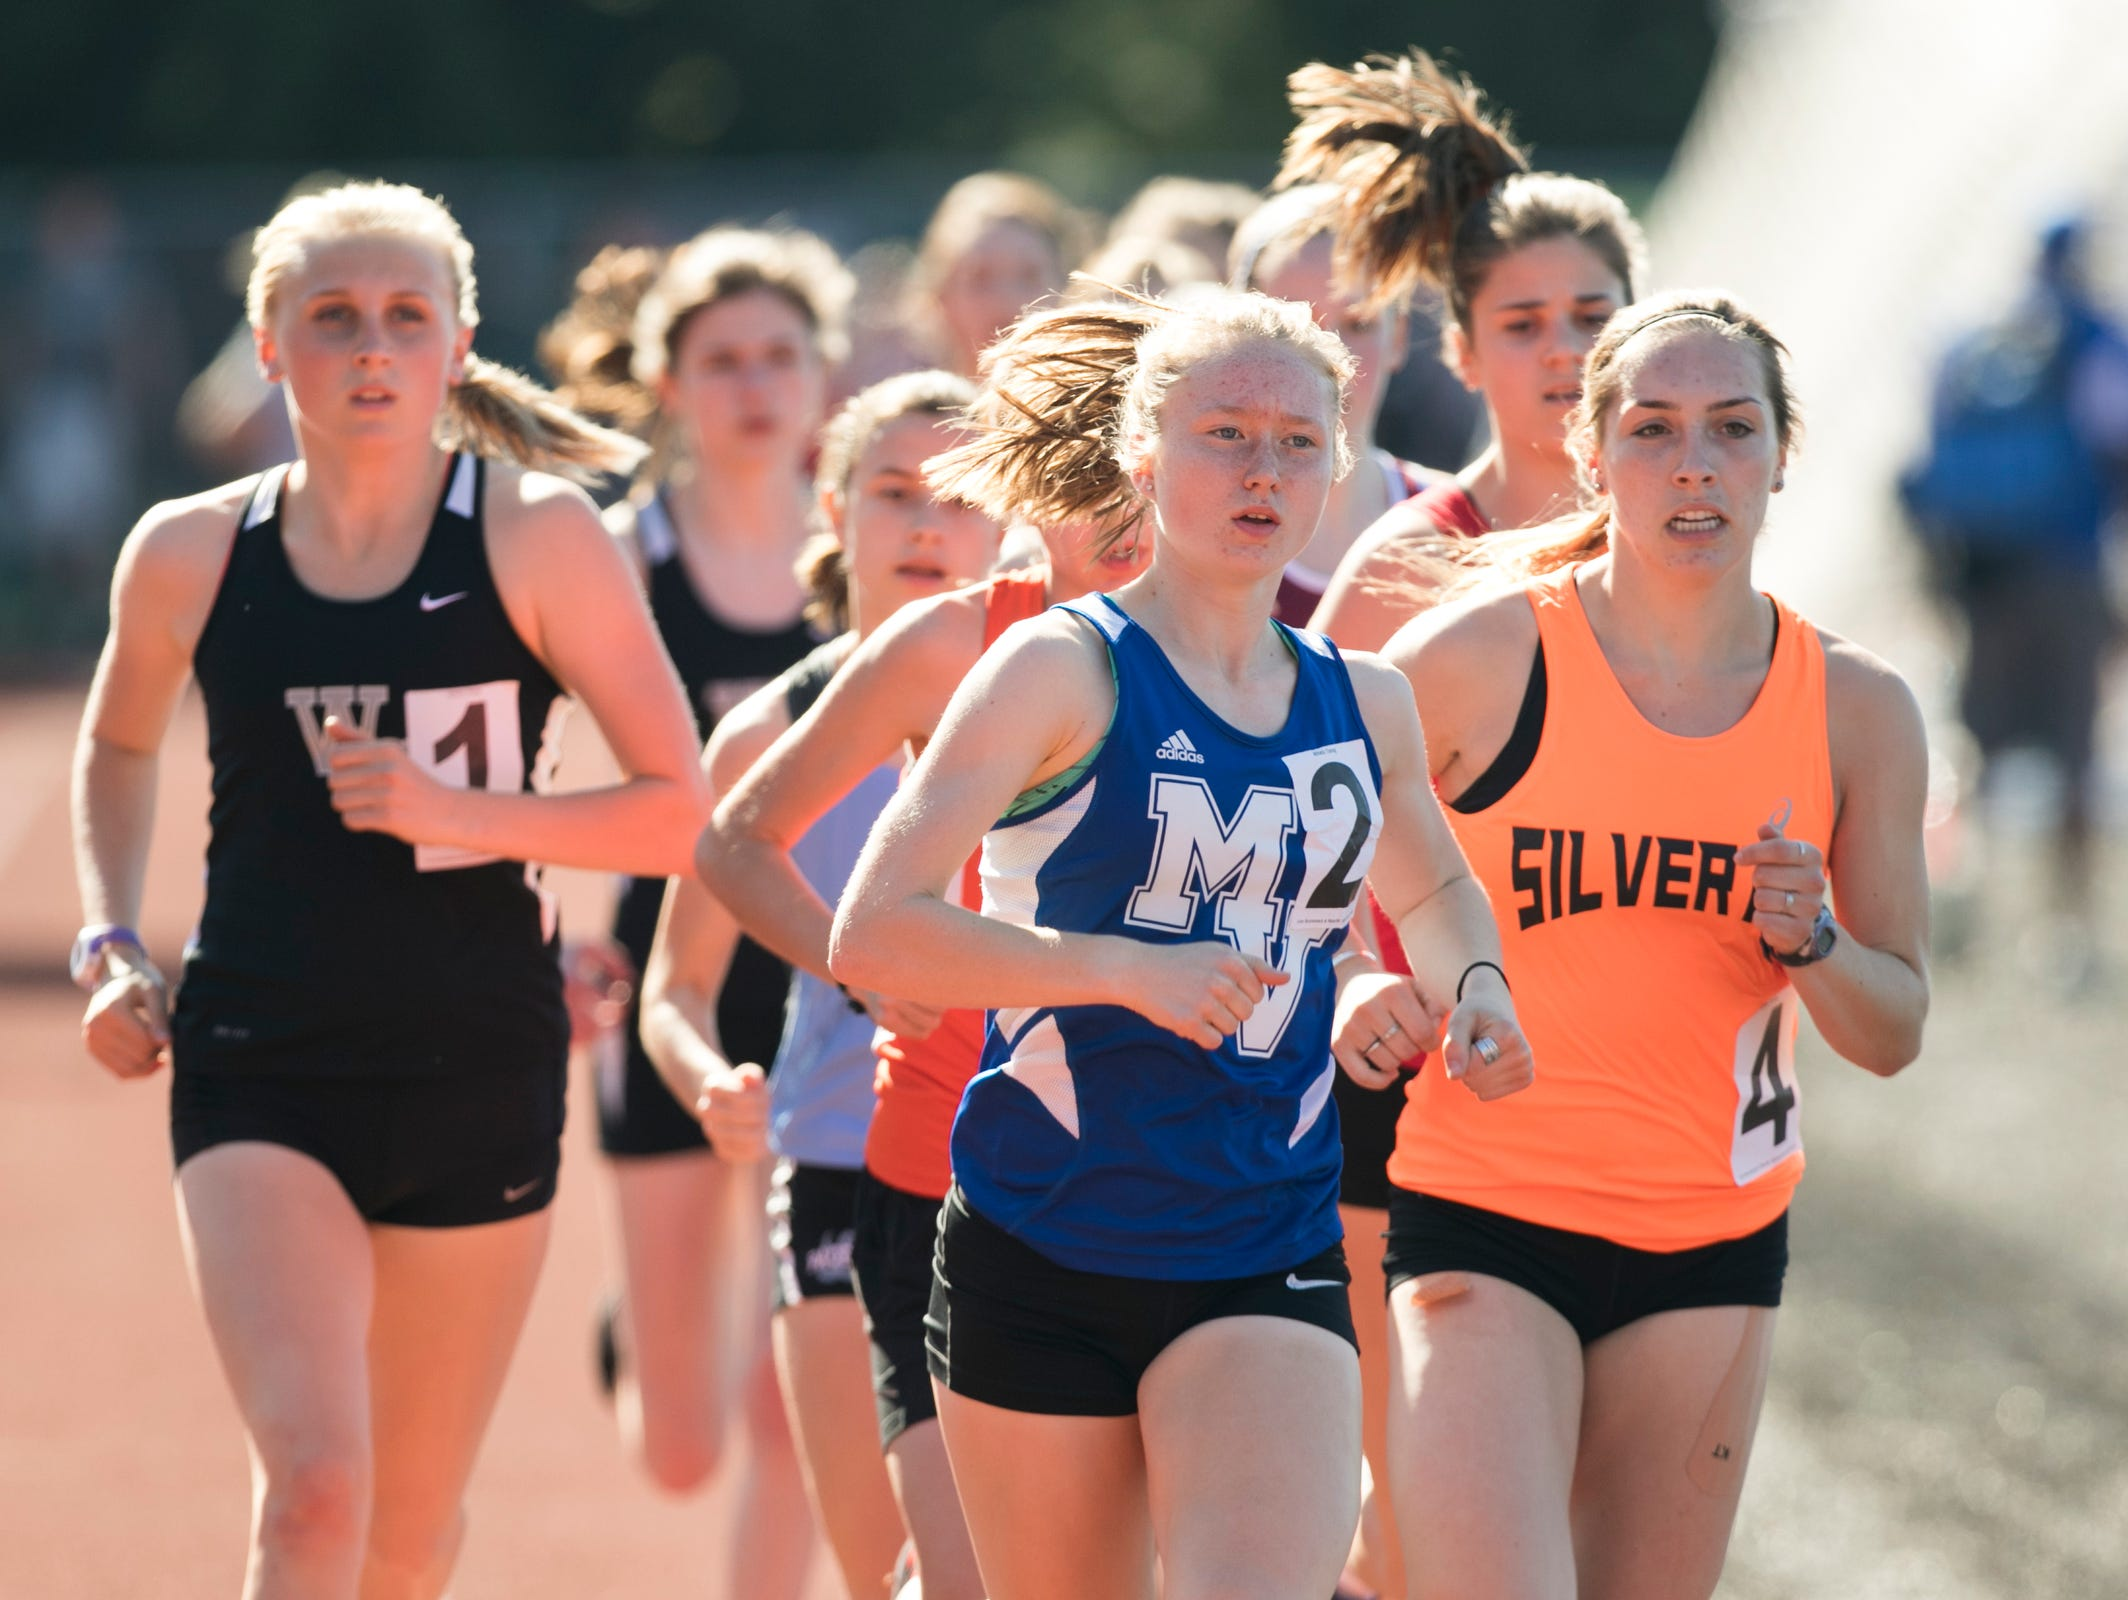 Mountain View's Savanna Craig leads the pack in the girls 1500 meter race at the Titan Track Classic at West Salem High School on Friday, April 1, 2016.